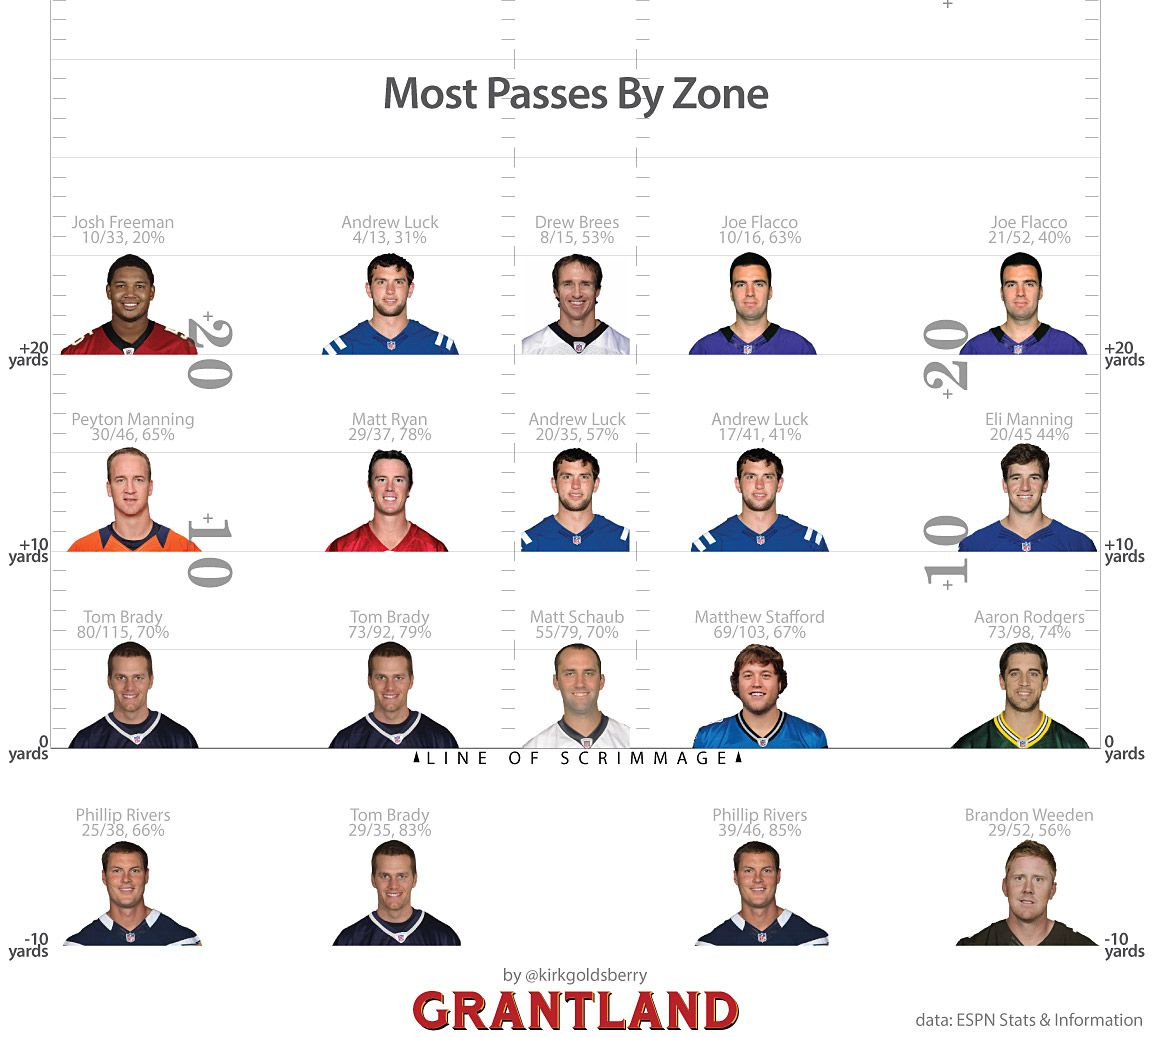 Most Passes By Zone